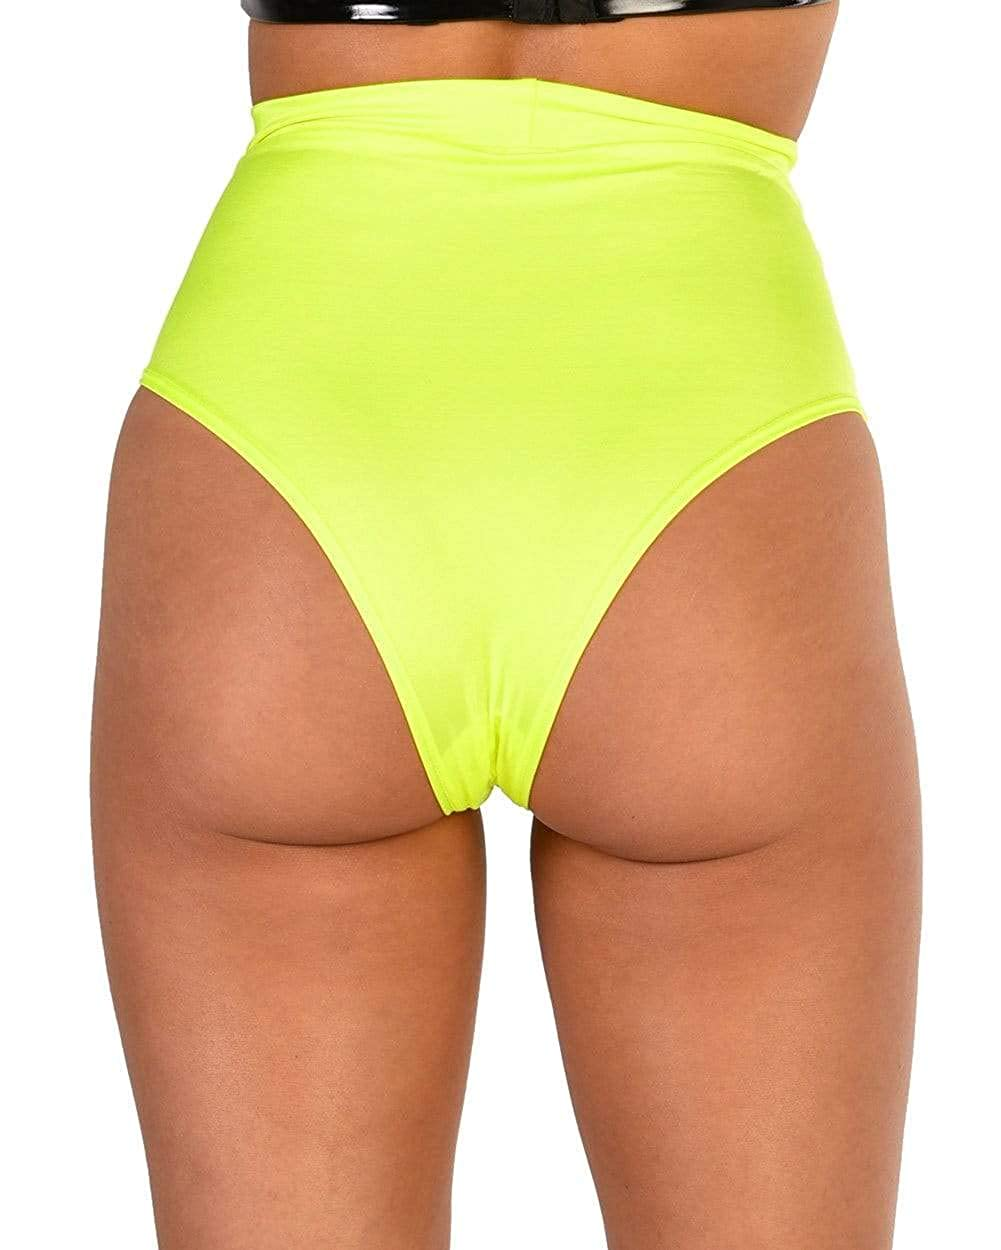 iHeartRaves Electro High Waisted Booty Shorts Slip Pin-Up Style Bikinihose